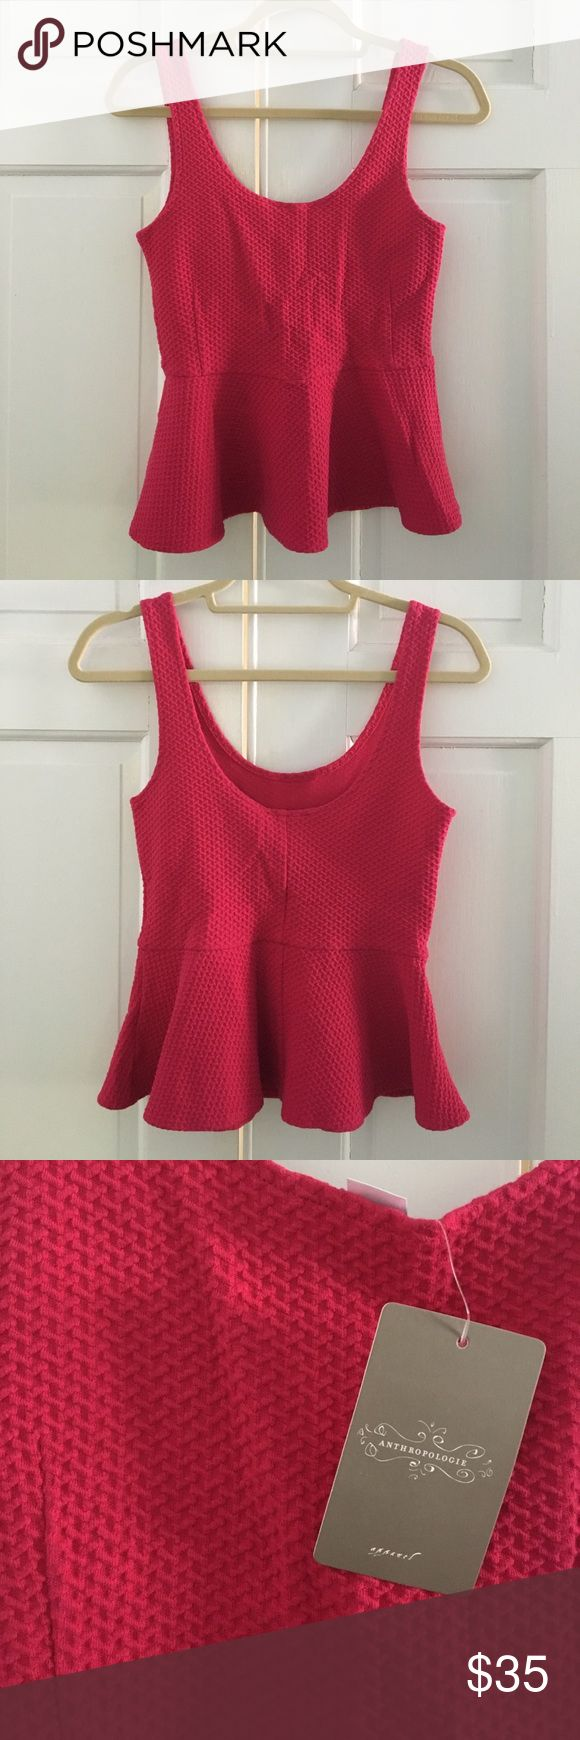 Anthropologie Peplum Top Cute!!!! Hot pink peplum top with waffle-like design. Straps wide enough to conceal bra strap. 95% cotton 5% elastane. Anthropologie Tops